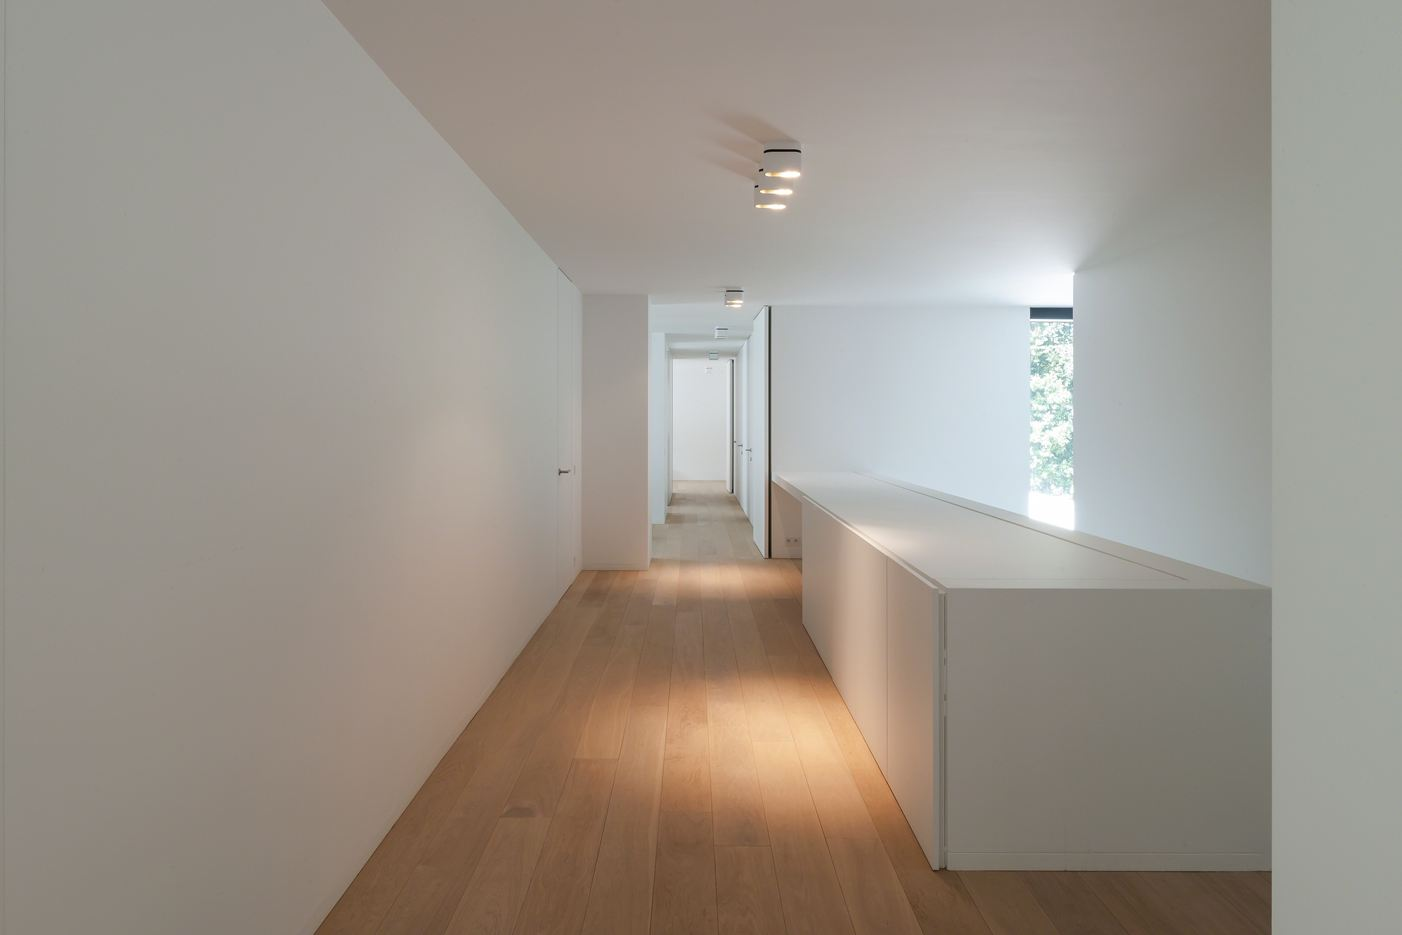 HS Residence in Brugge, Belgium by Cubyc Architects